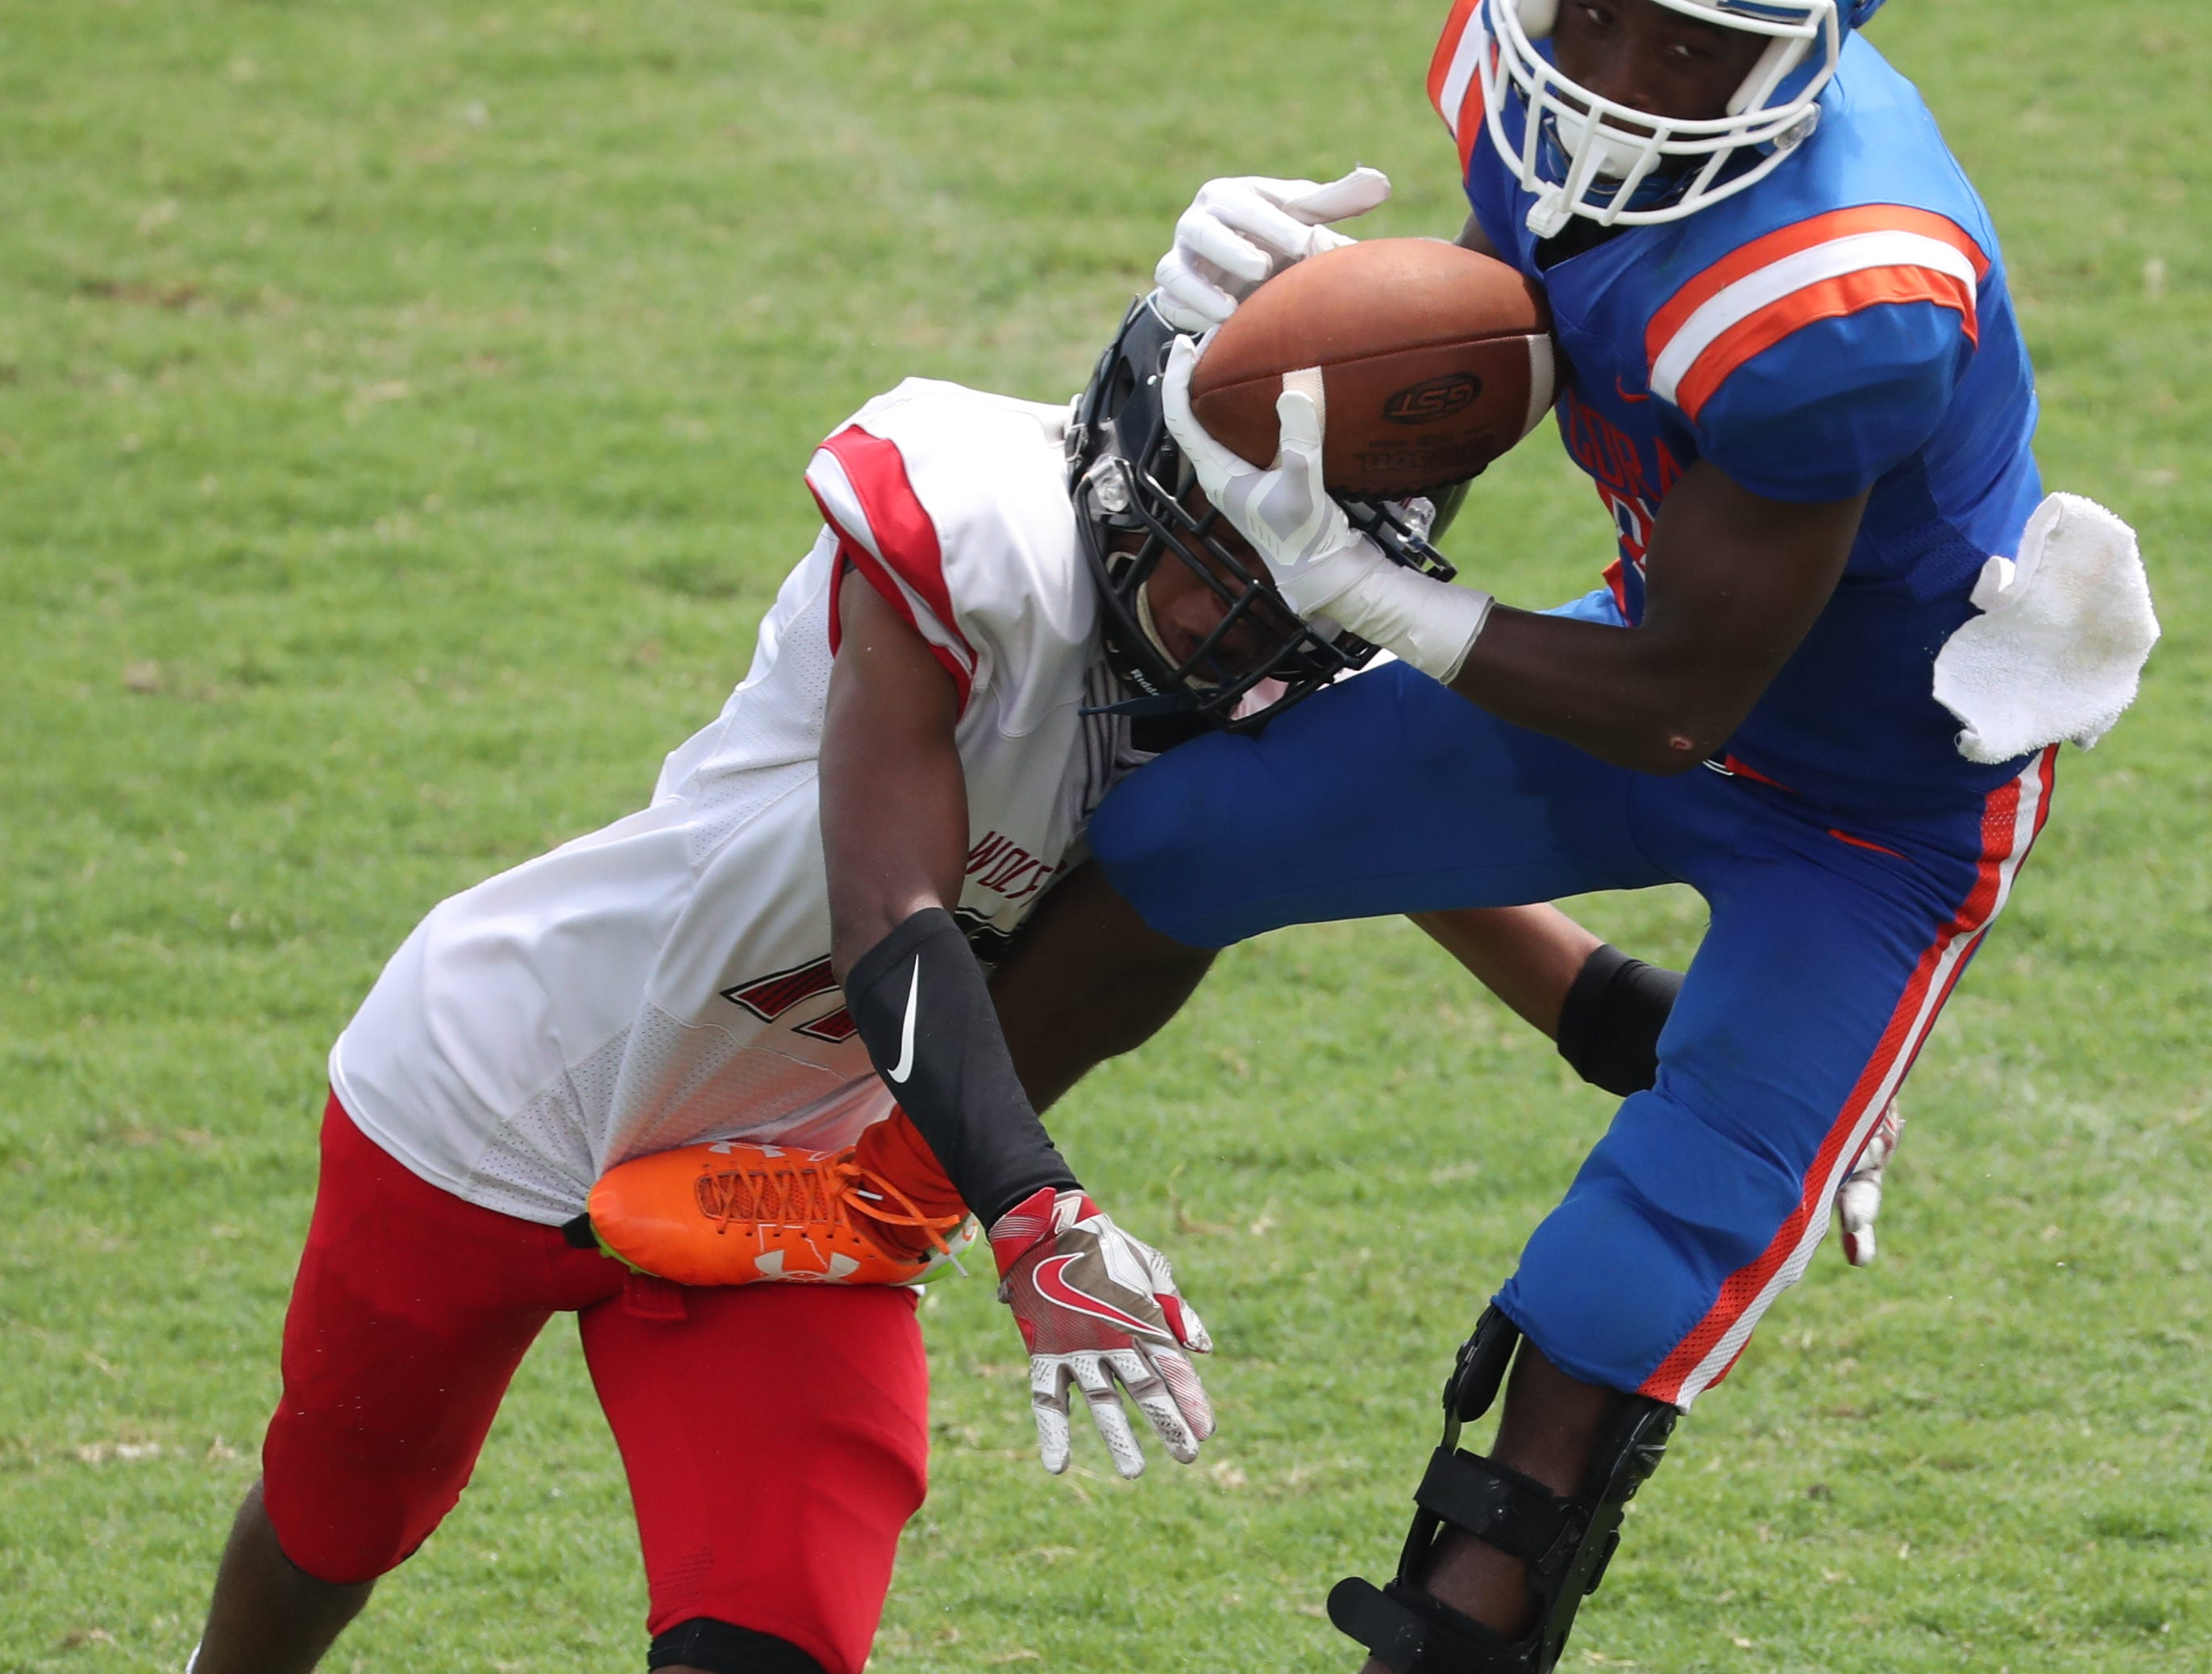 Images from the game. Cape beat South Fort Myers in their Saturday morning game.